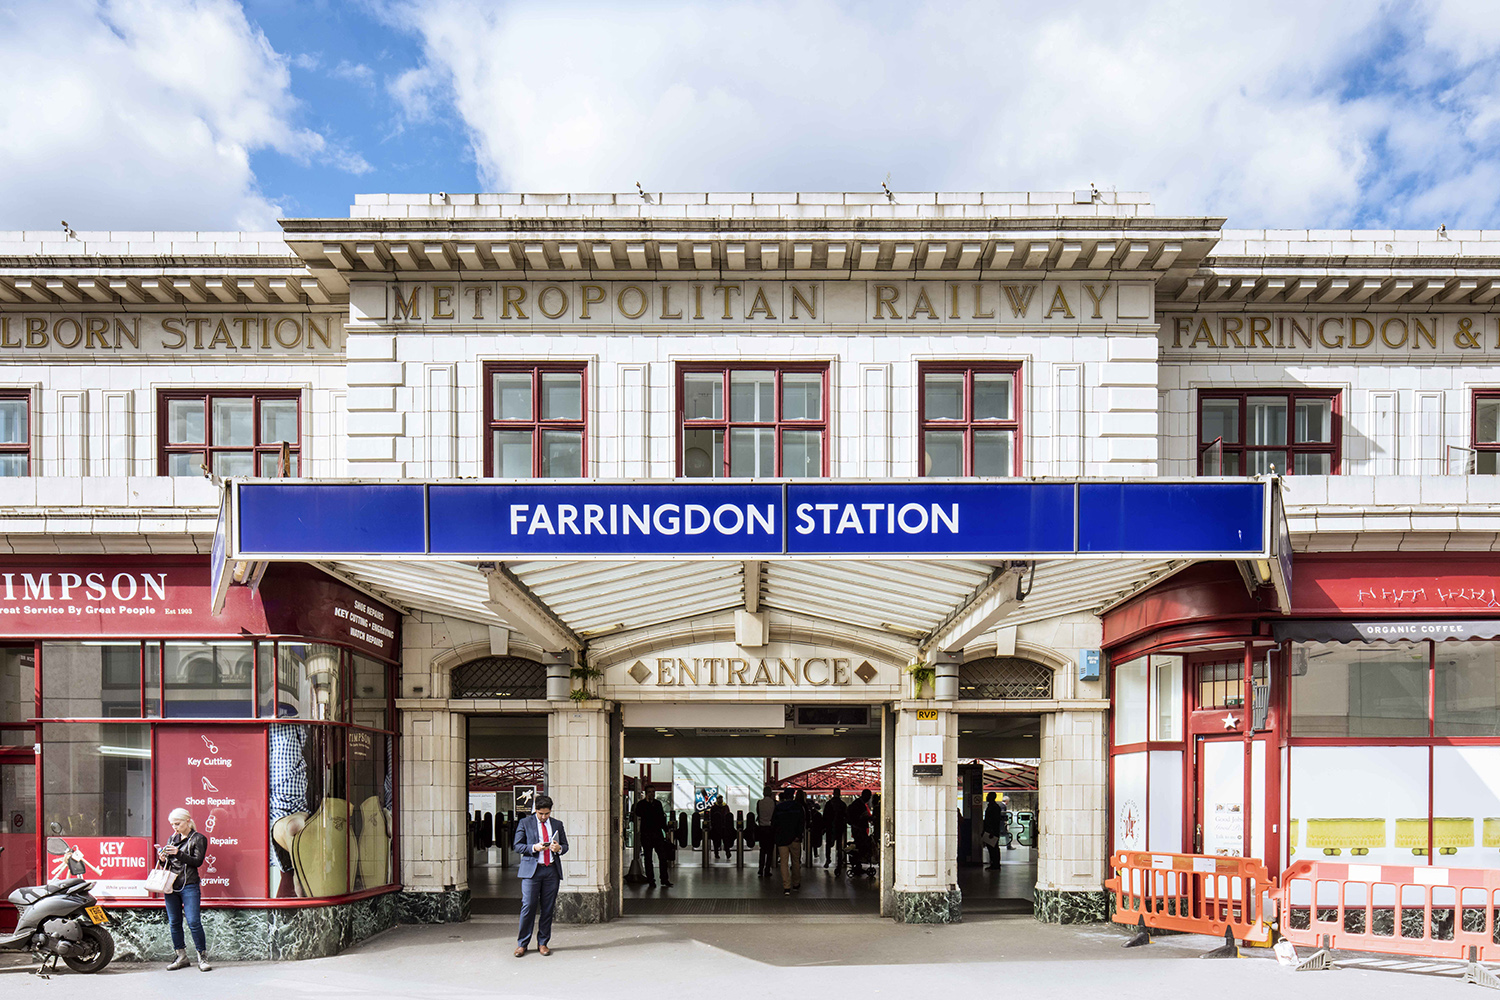 FARINGDON / HAMMERSMITH & CITY, CIRCLE AND METROPOLITAN LINES / ARCHITECT: CHARLES WALTER CLARK